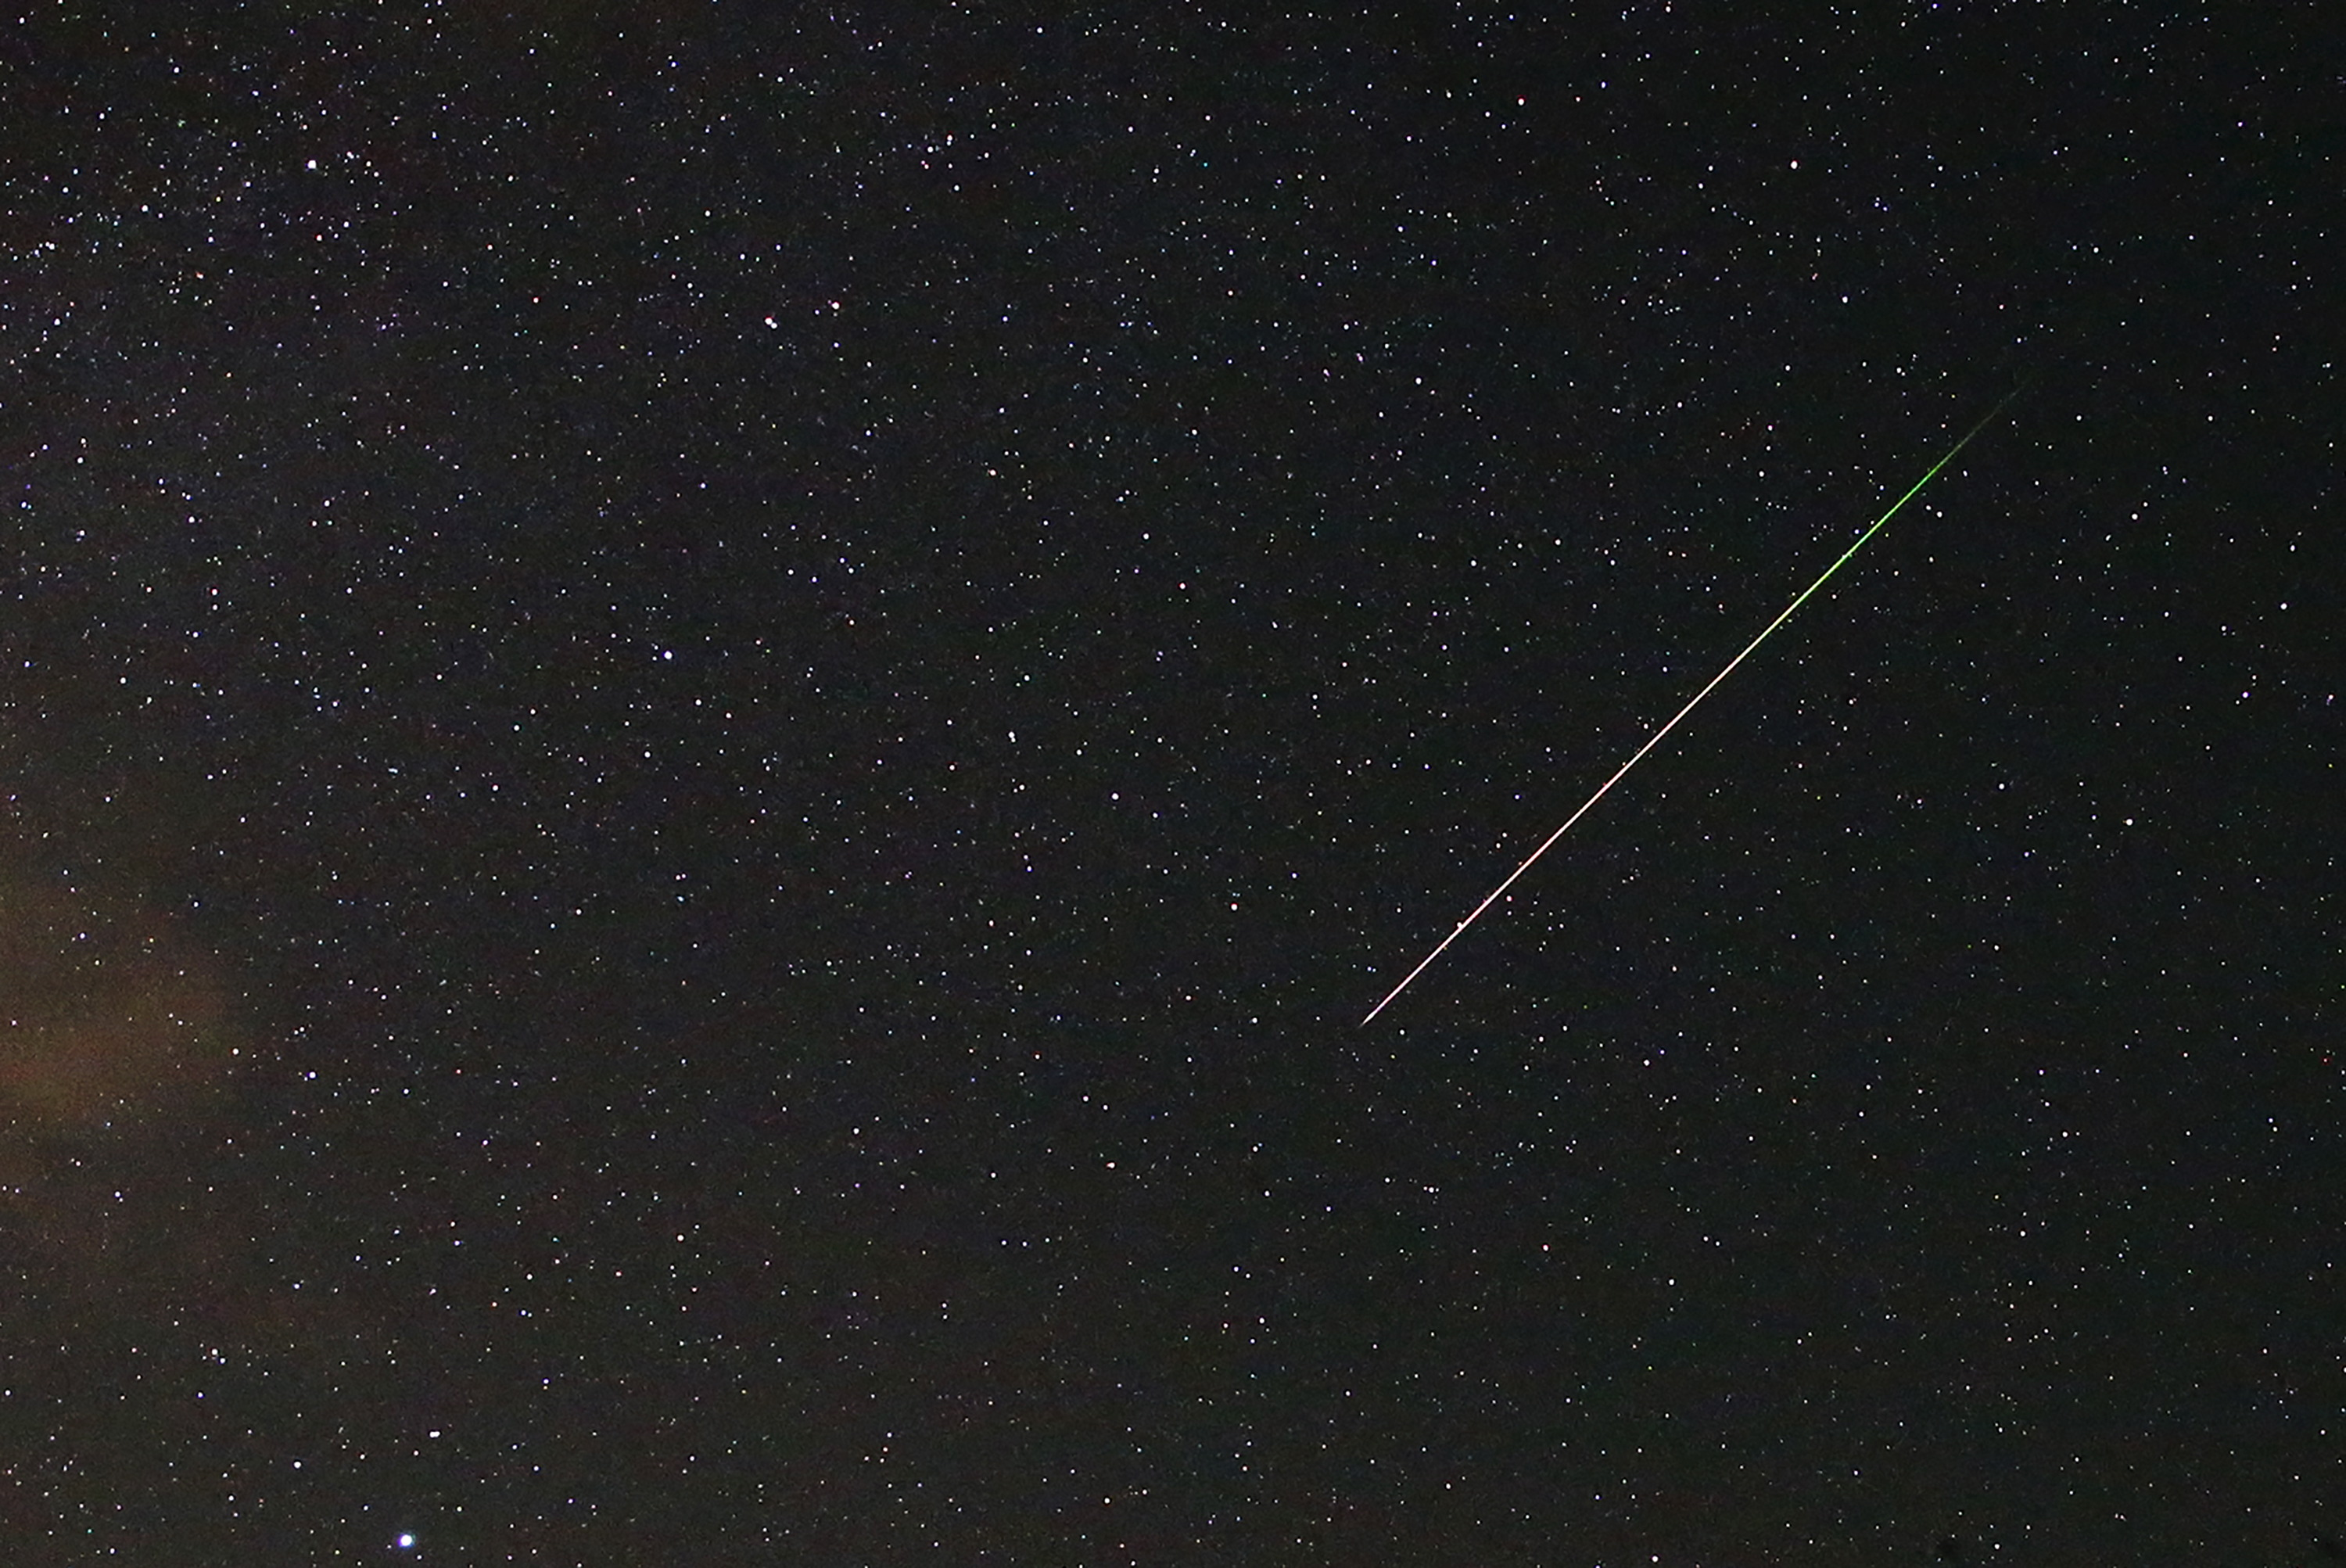 Perseid meteor shower to peak with dozens of shooting stars